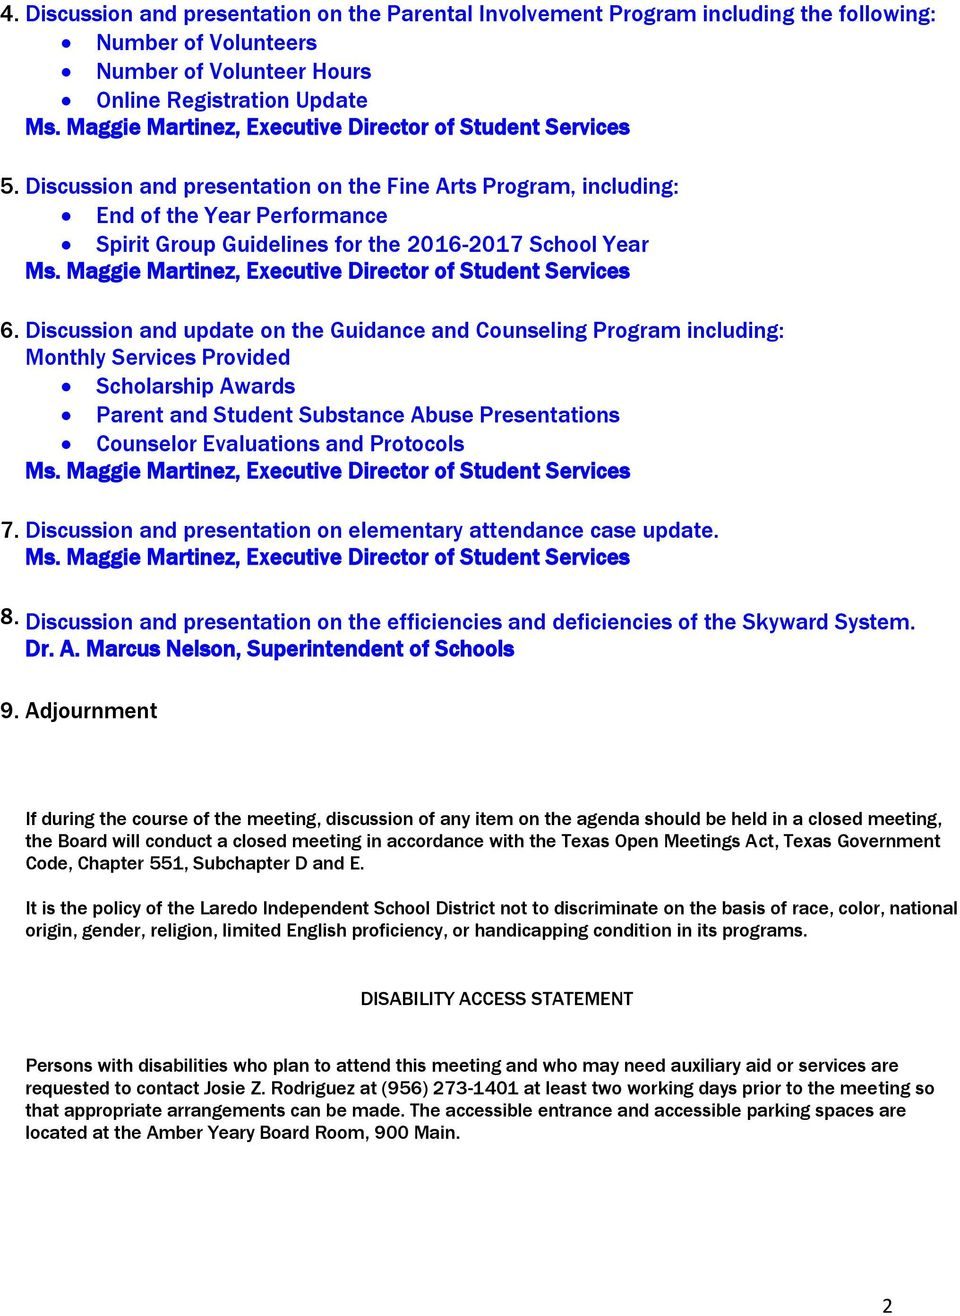 Laredo I.S.D. Board of Trustees Student Services Meeting Wednesday ...